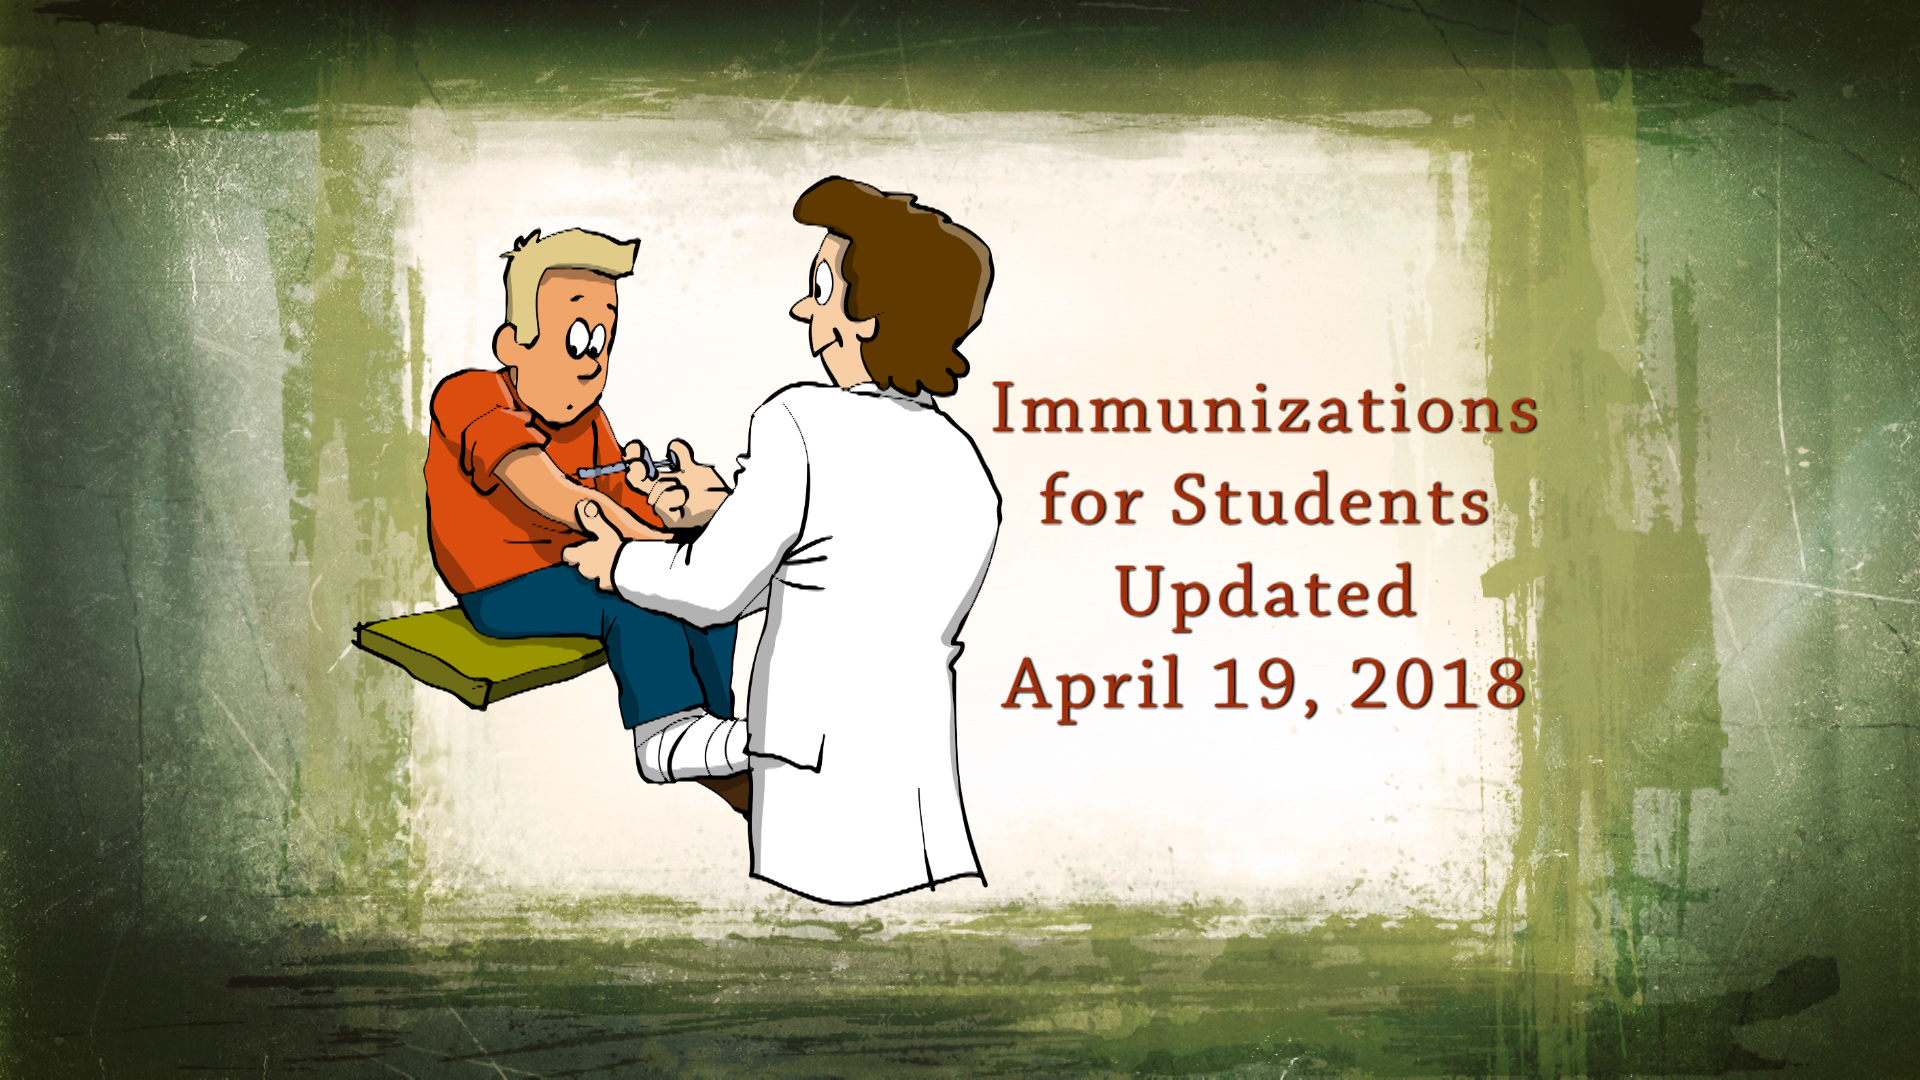 Immunizations for Students Updated April 19, 2018